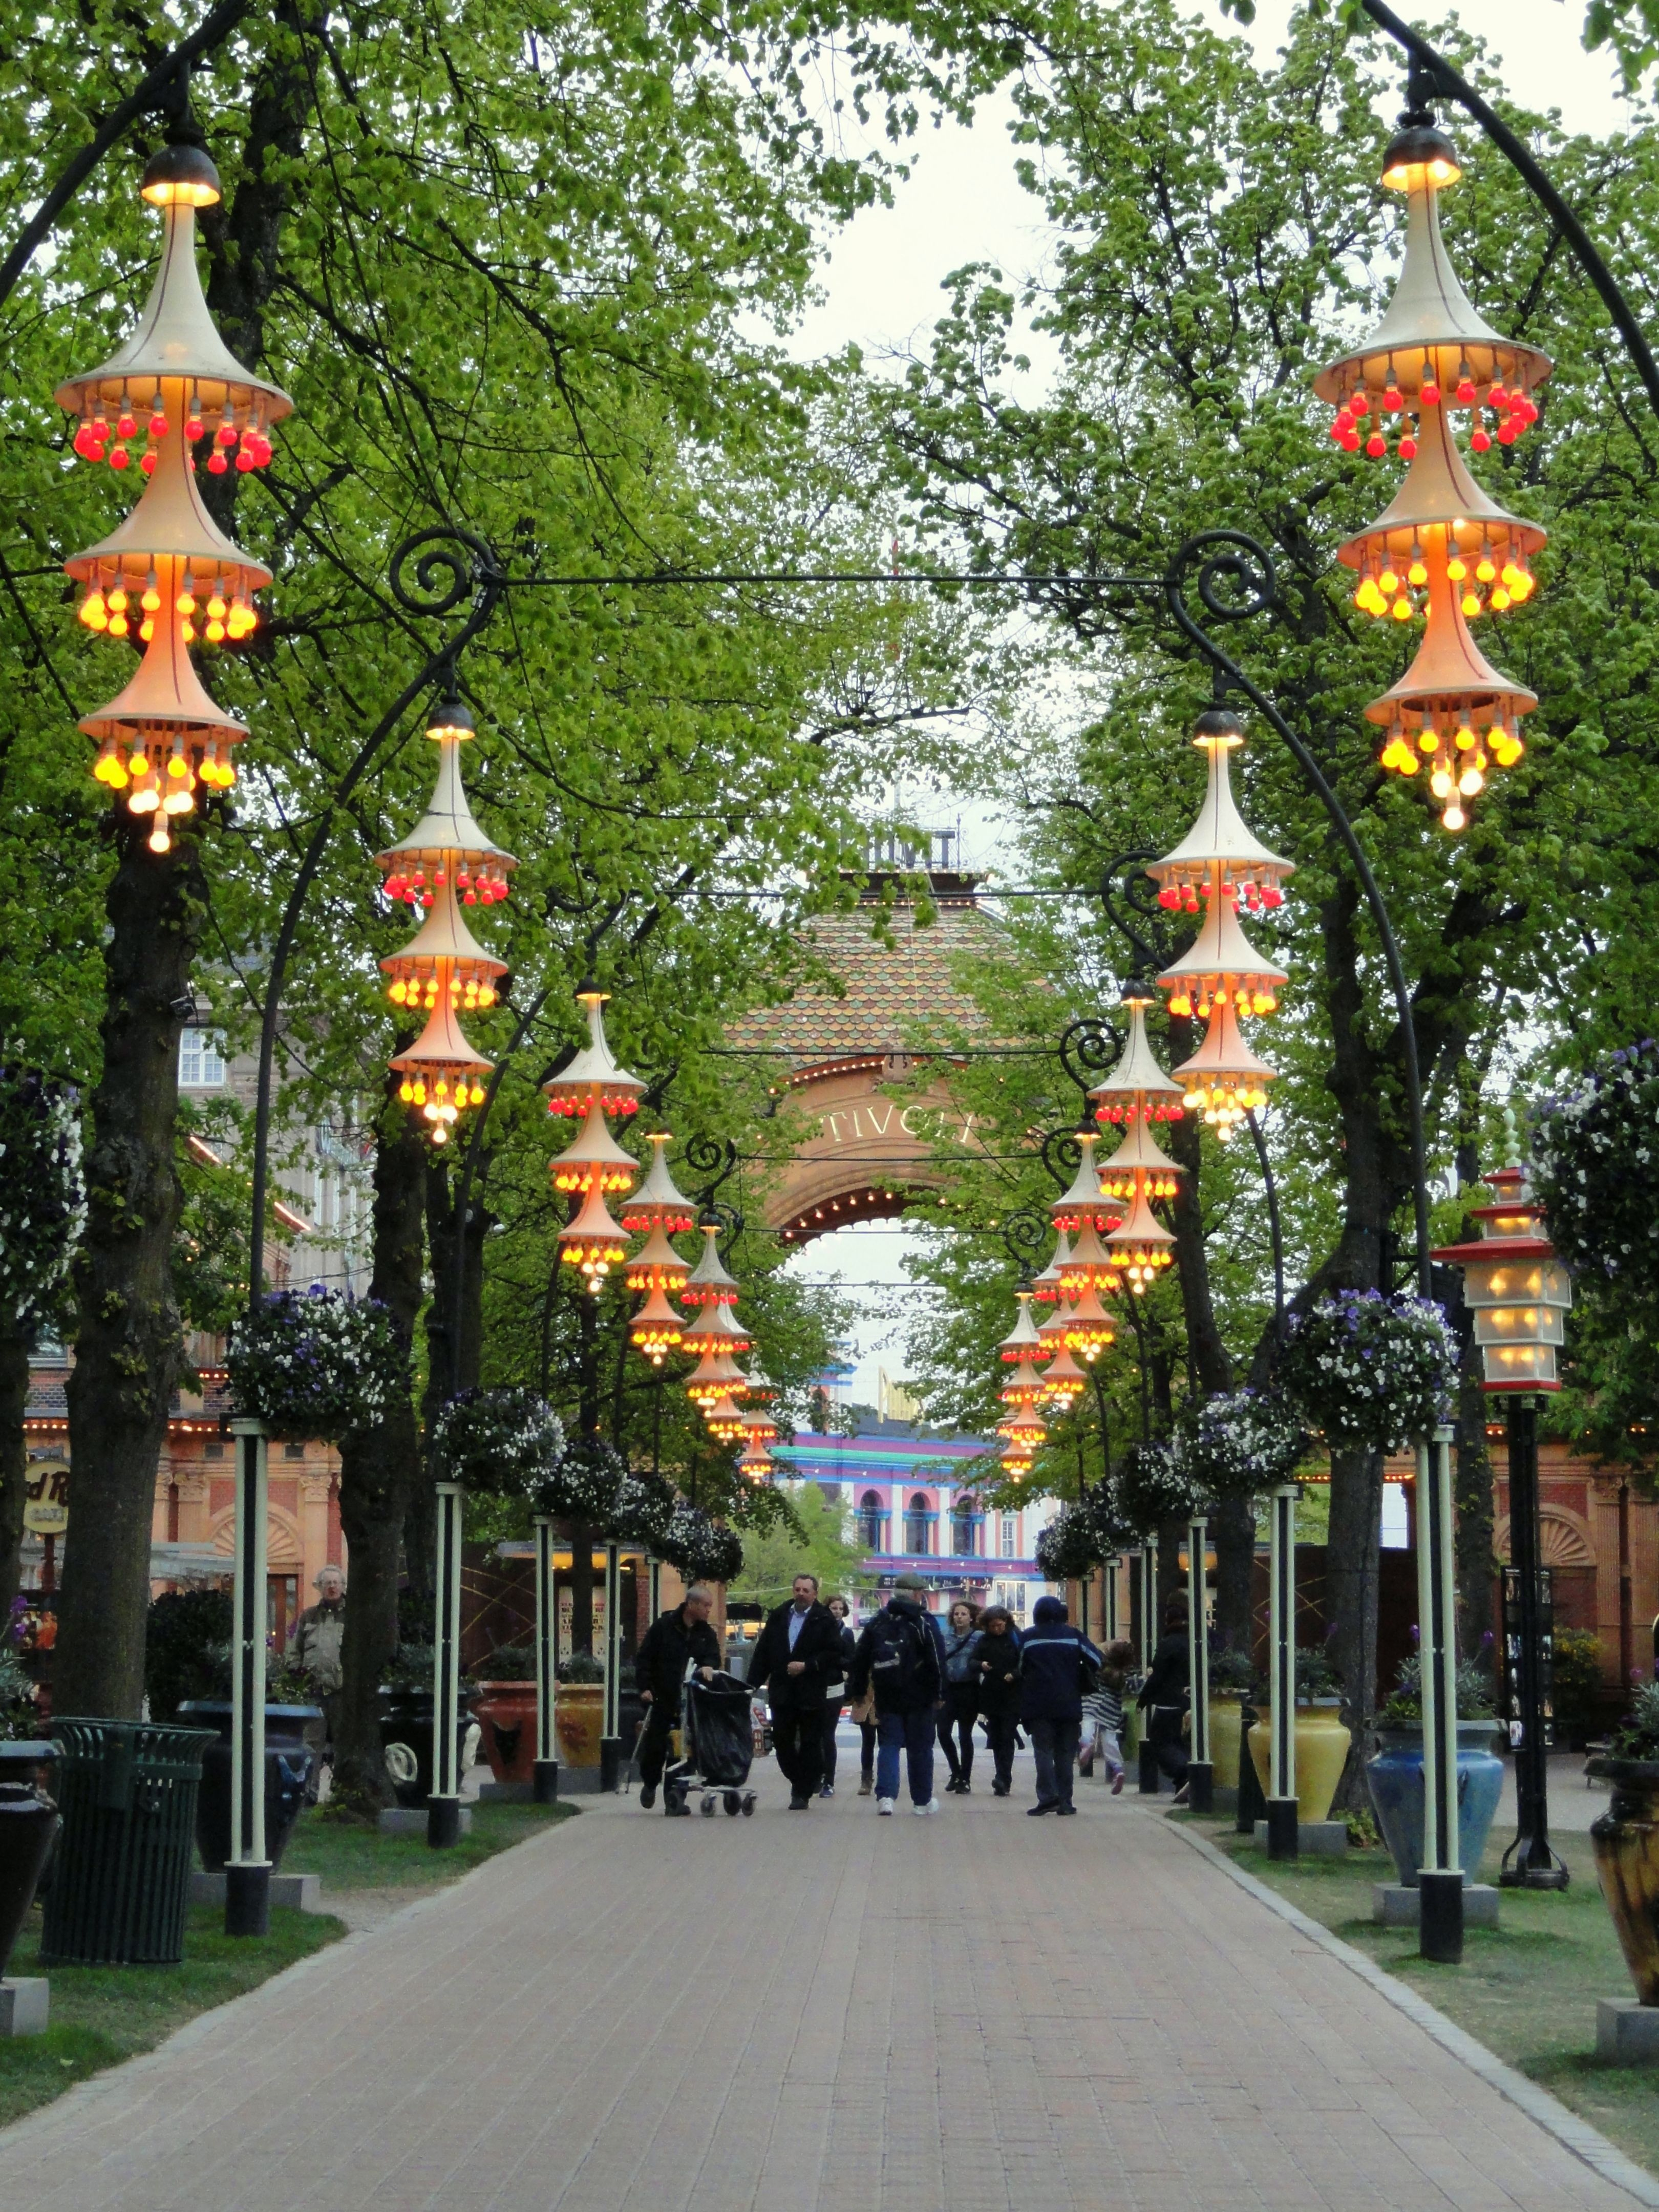 93f07a2e992c030b681df9aa4fa6cd3a - What Is Tivoli Gardens Like Today